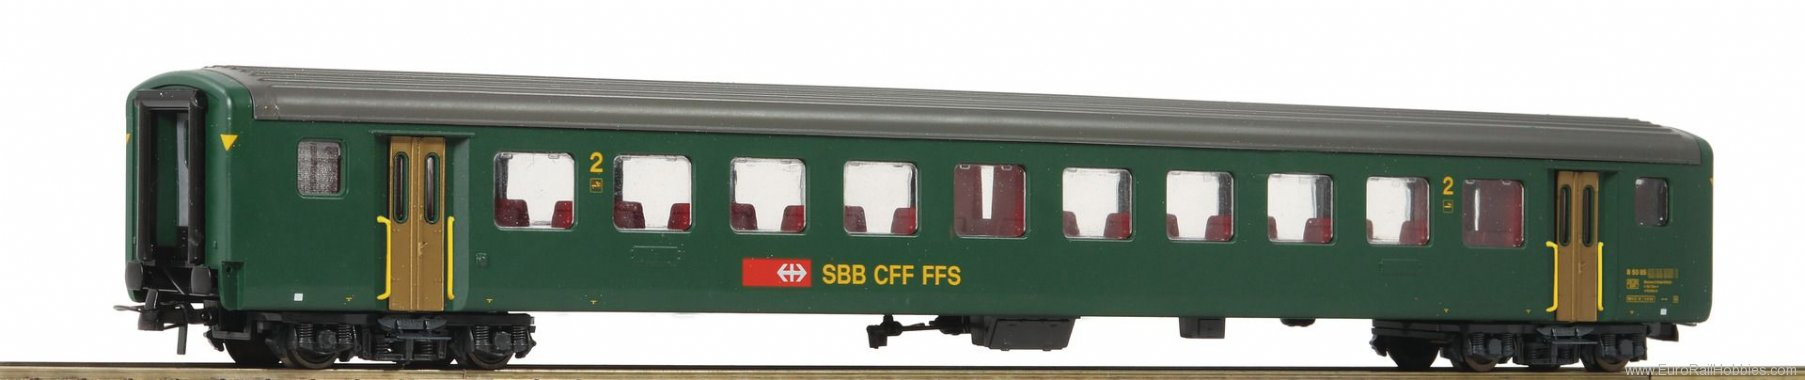 Roco 74571 2nd class fast train coach EW II, SBB